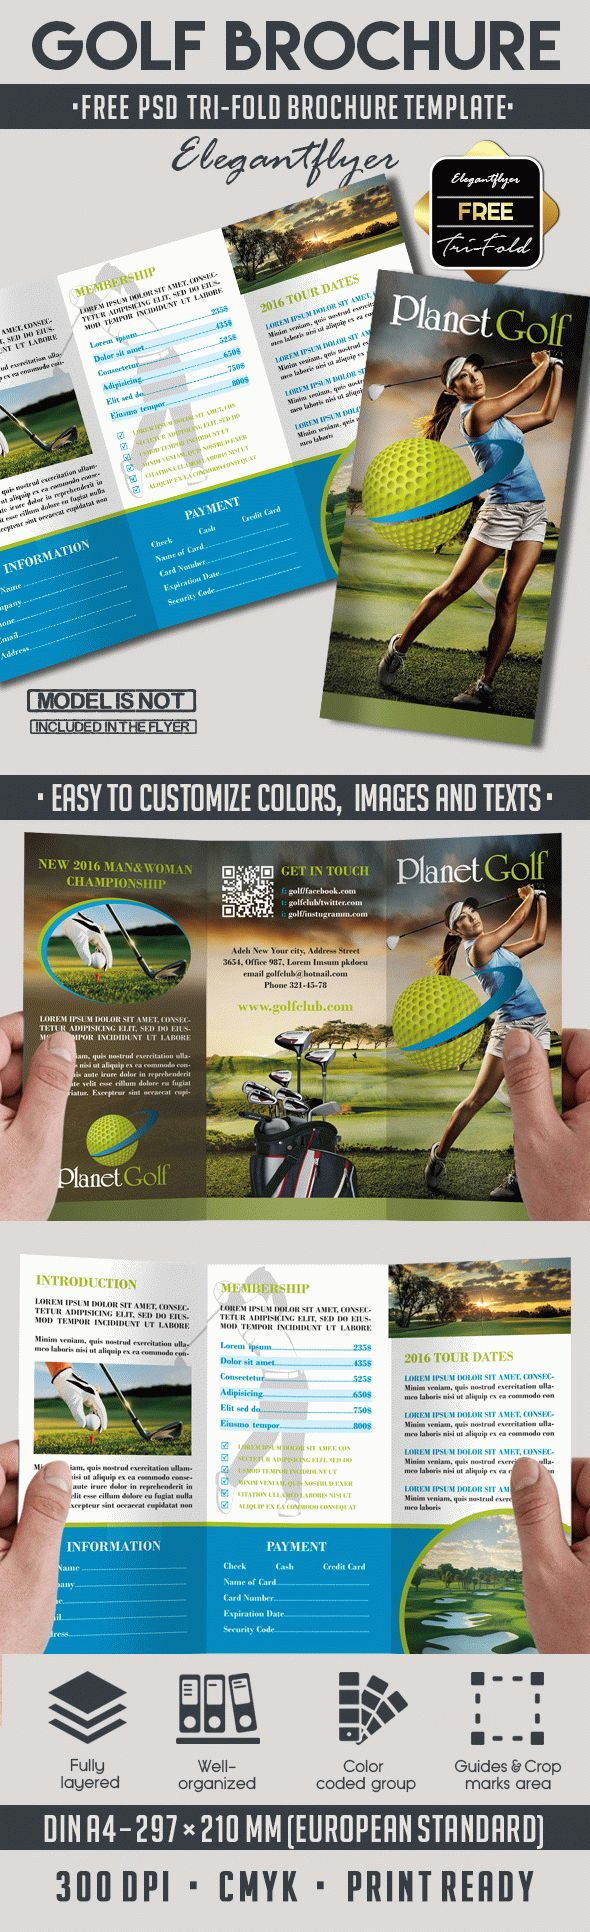 free psd brochure template - golf club free psd tri fold psd brochure template by